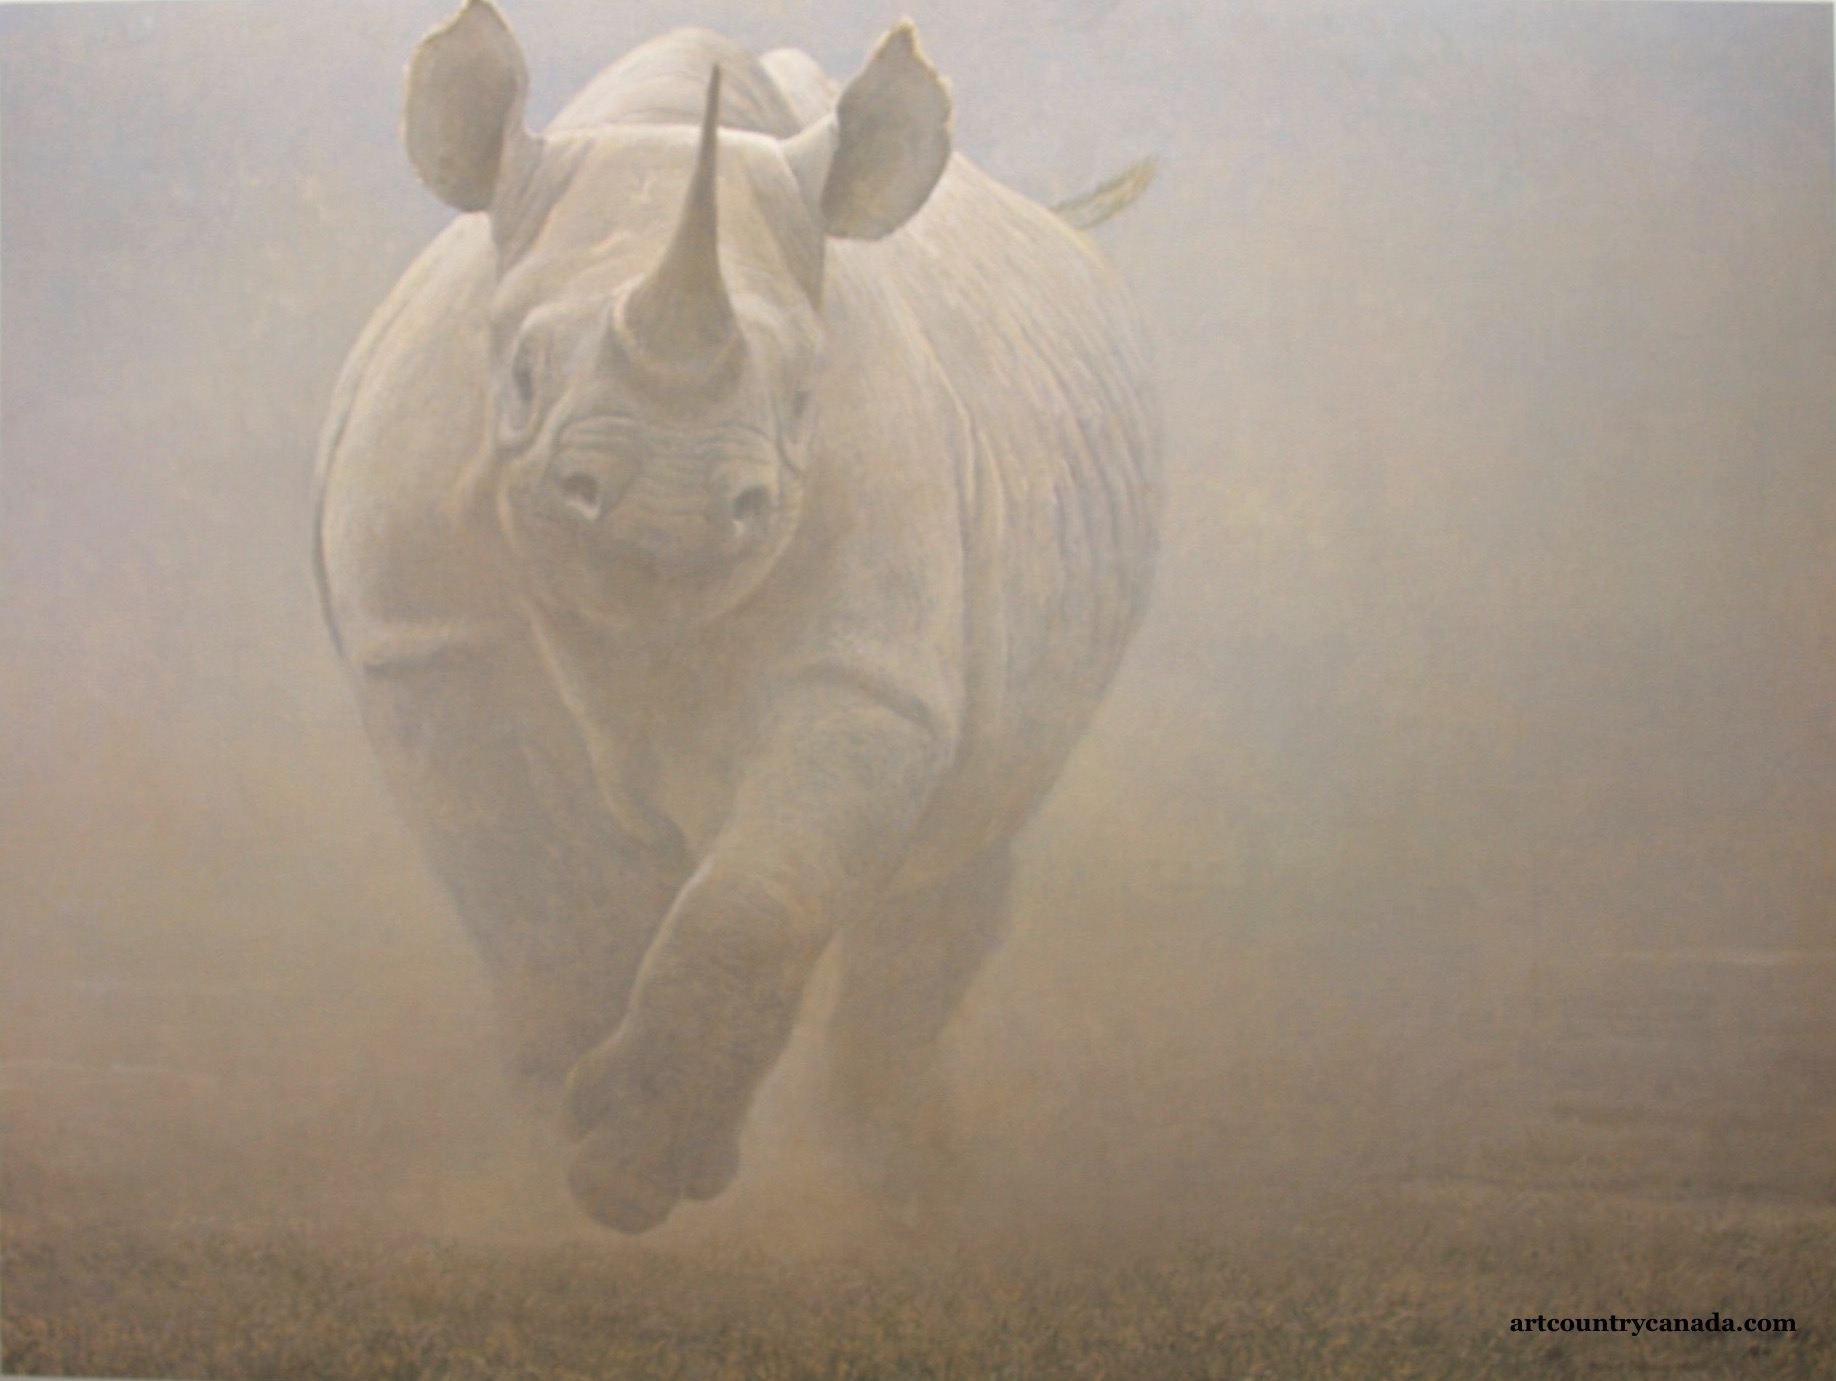 Robert Bateman Powerplay Rhinoceras